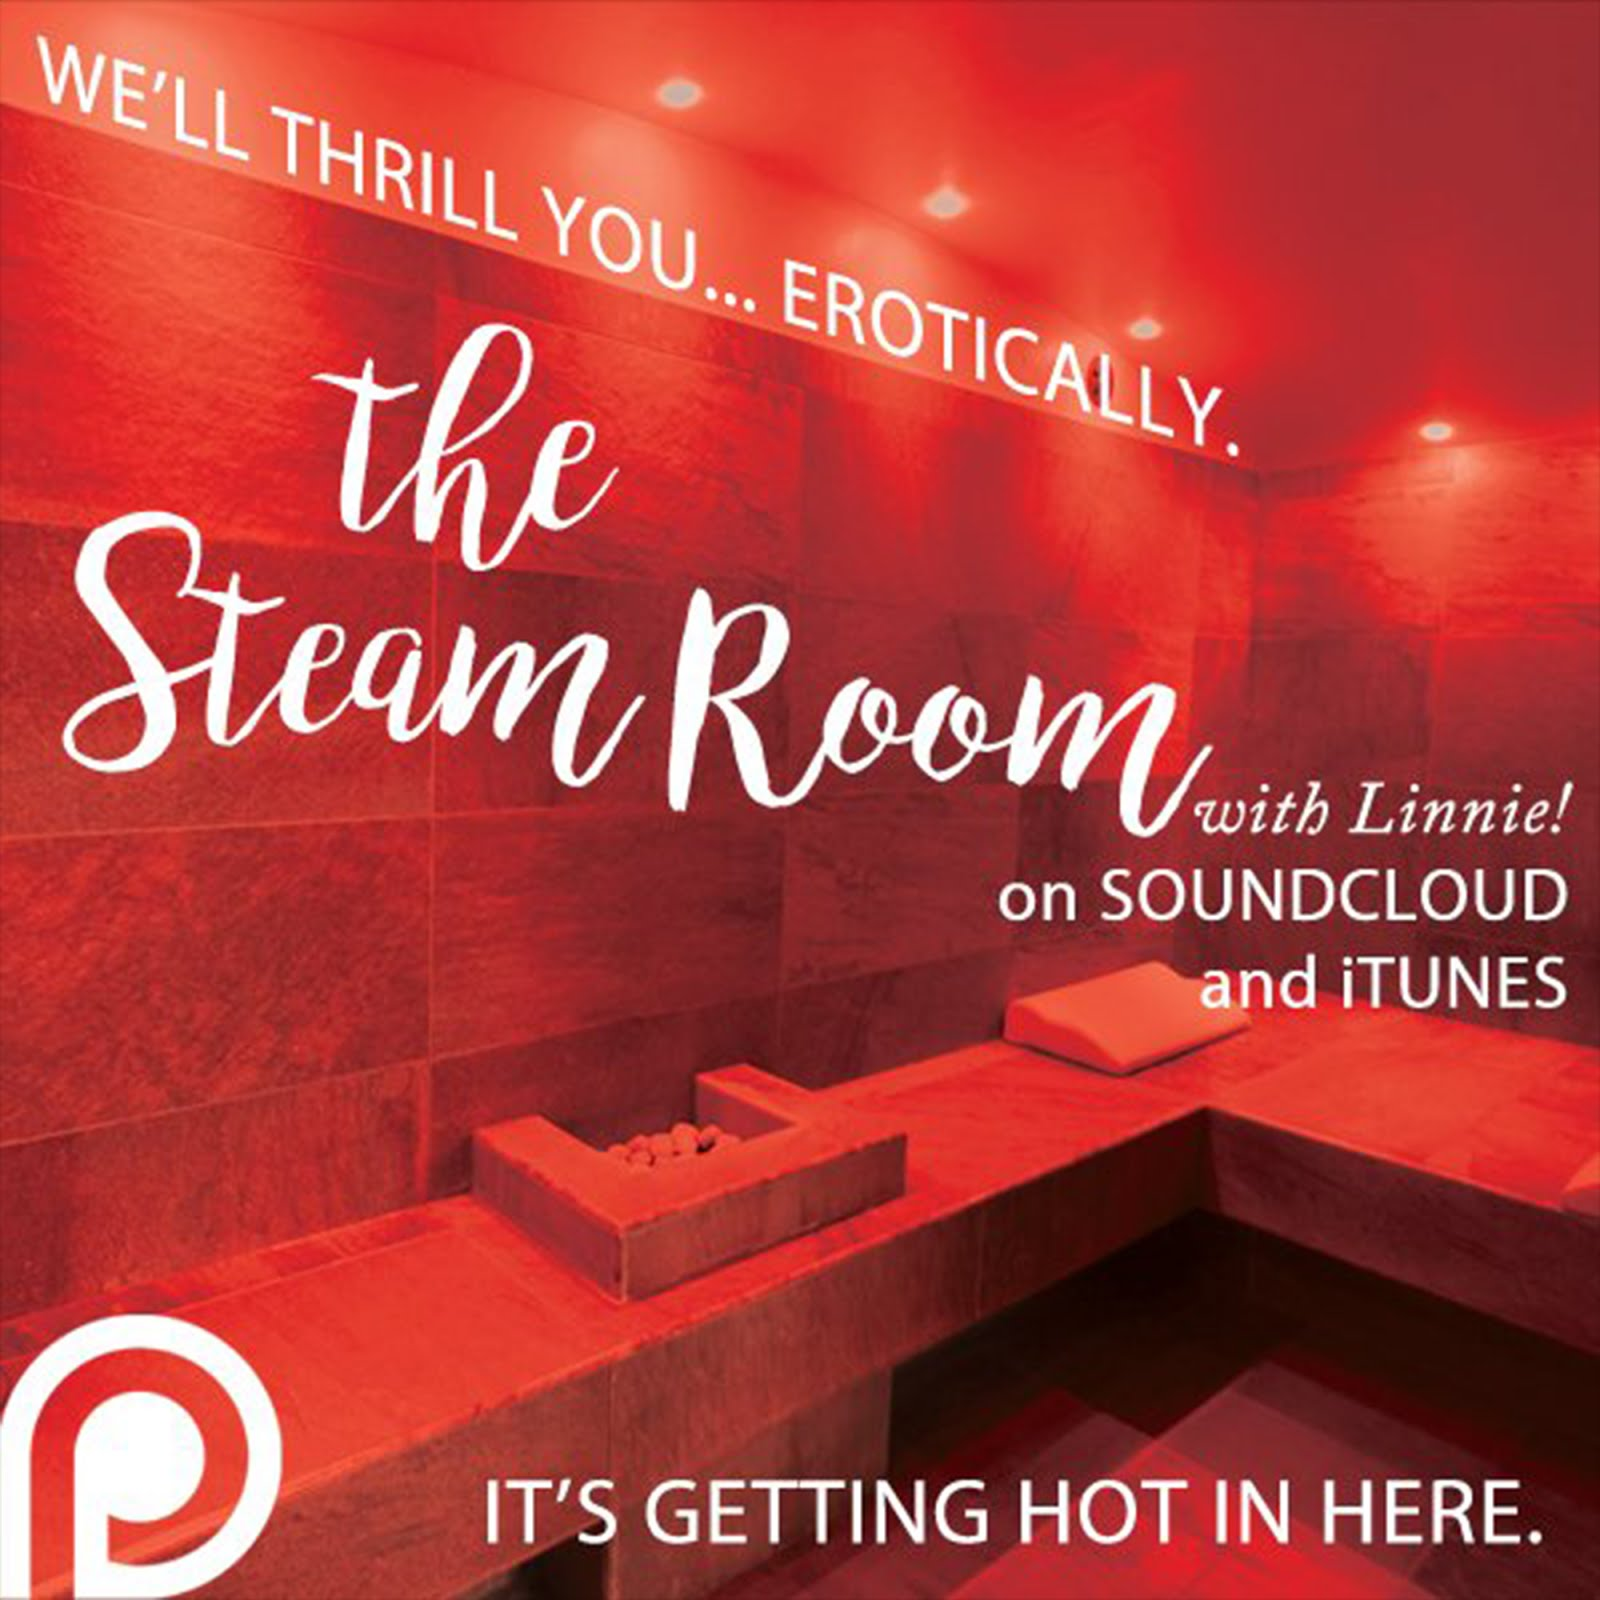 Meet Us in The Steam Room...